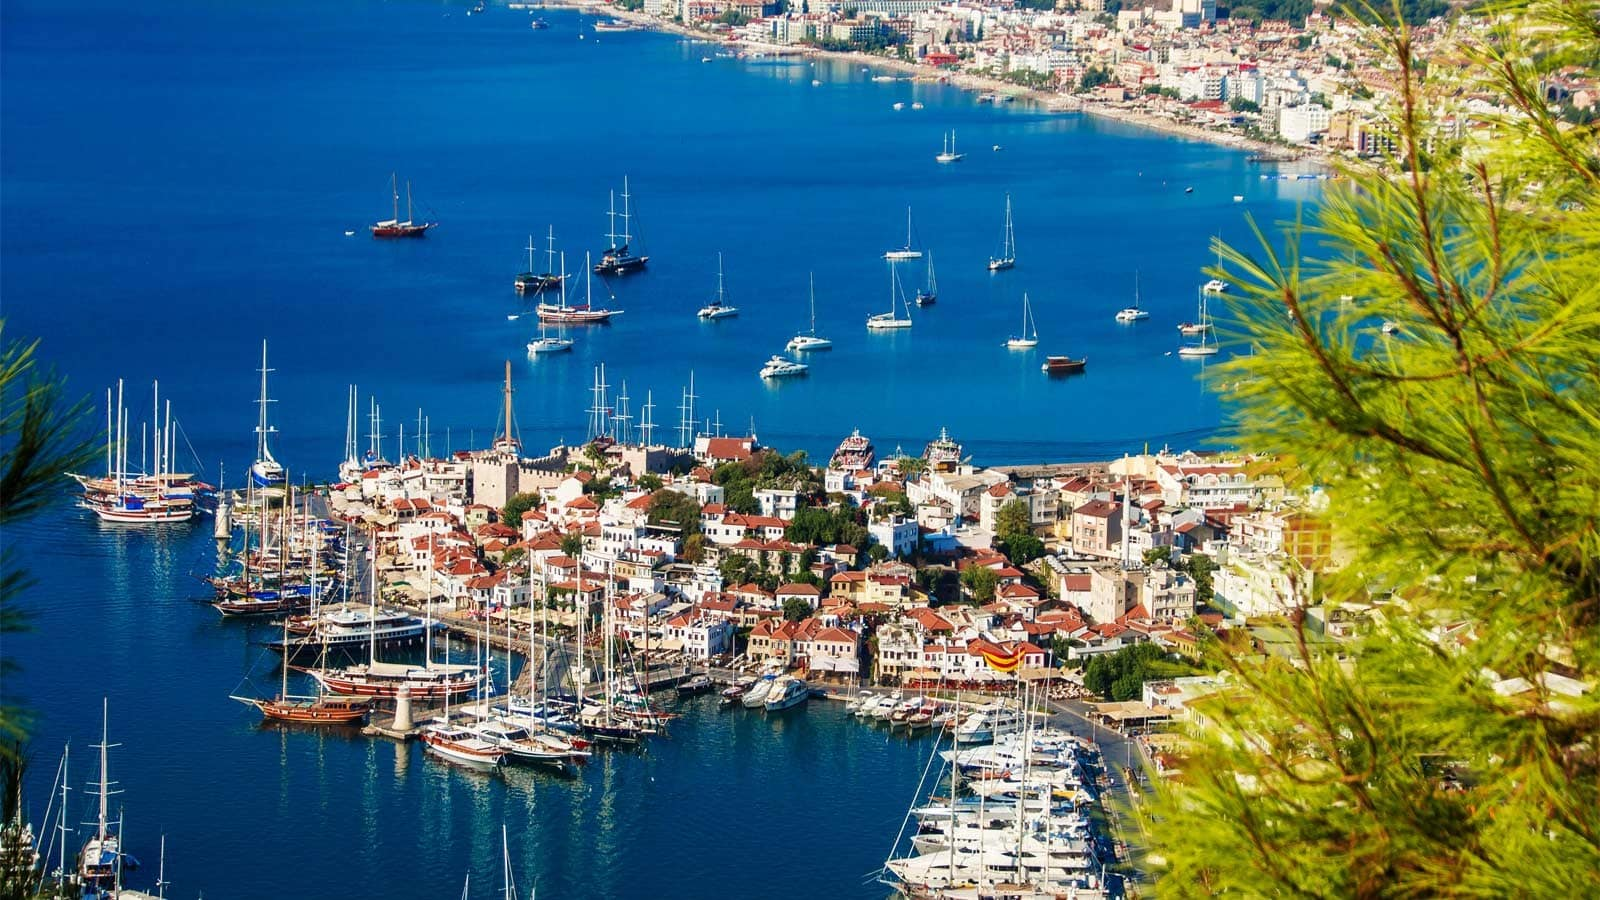 boats sailing the coasts of Marmaris